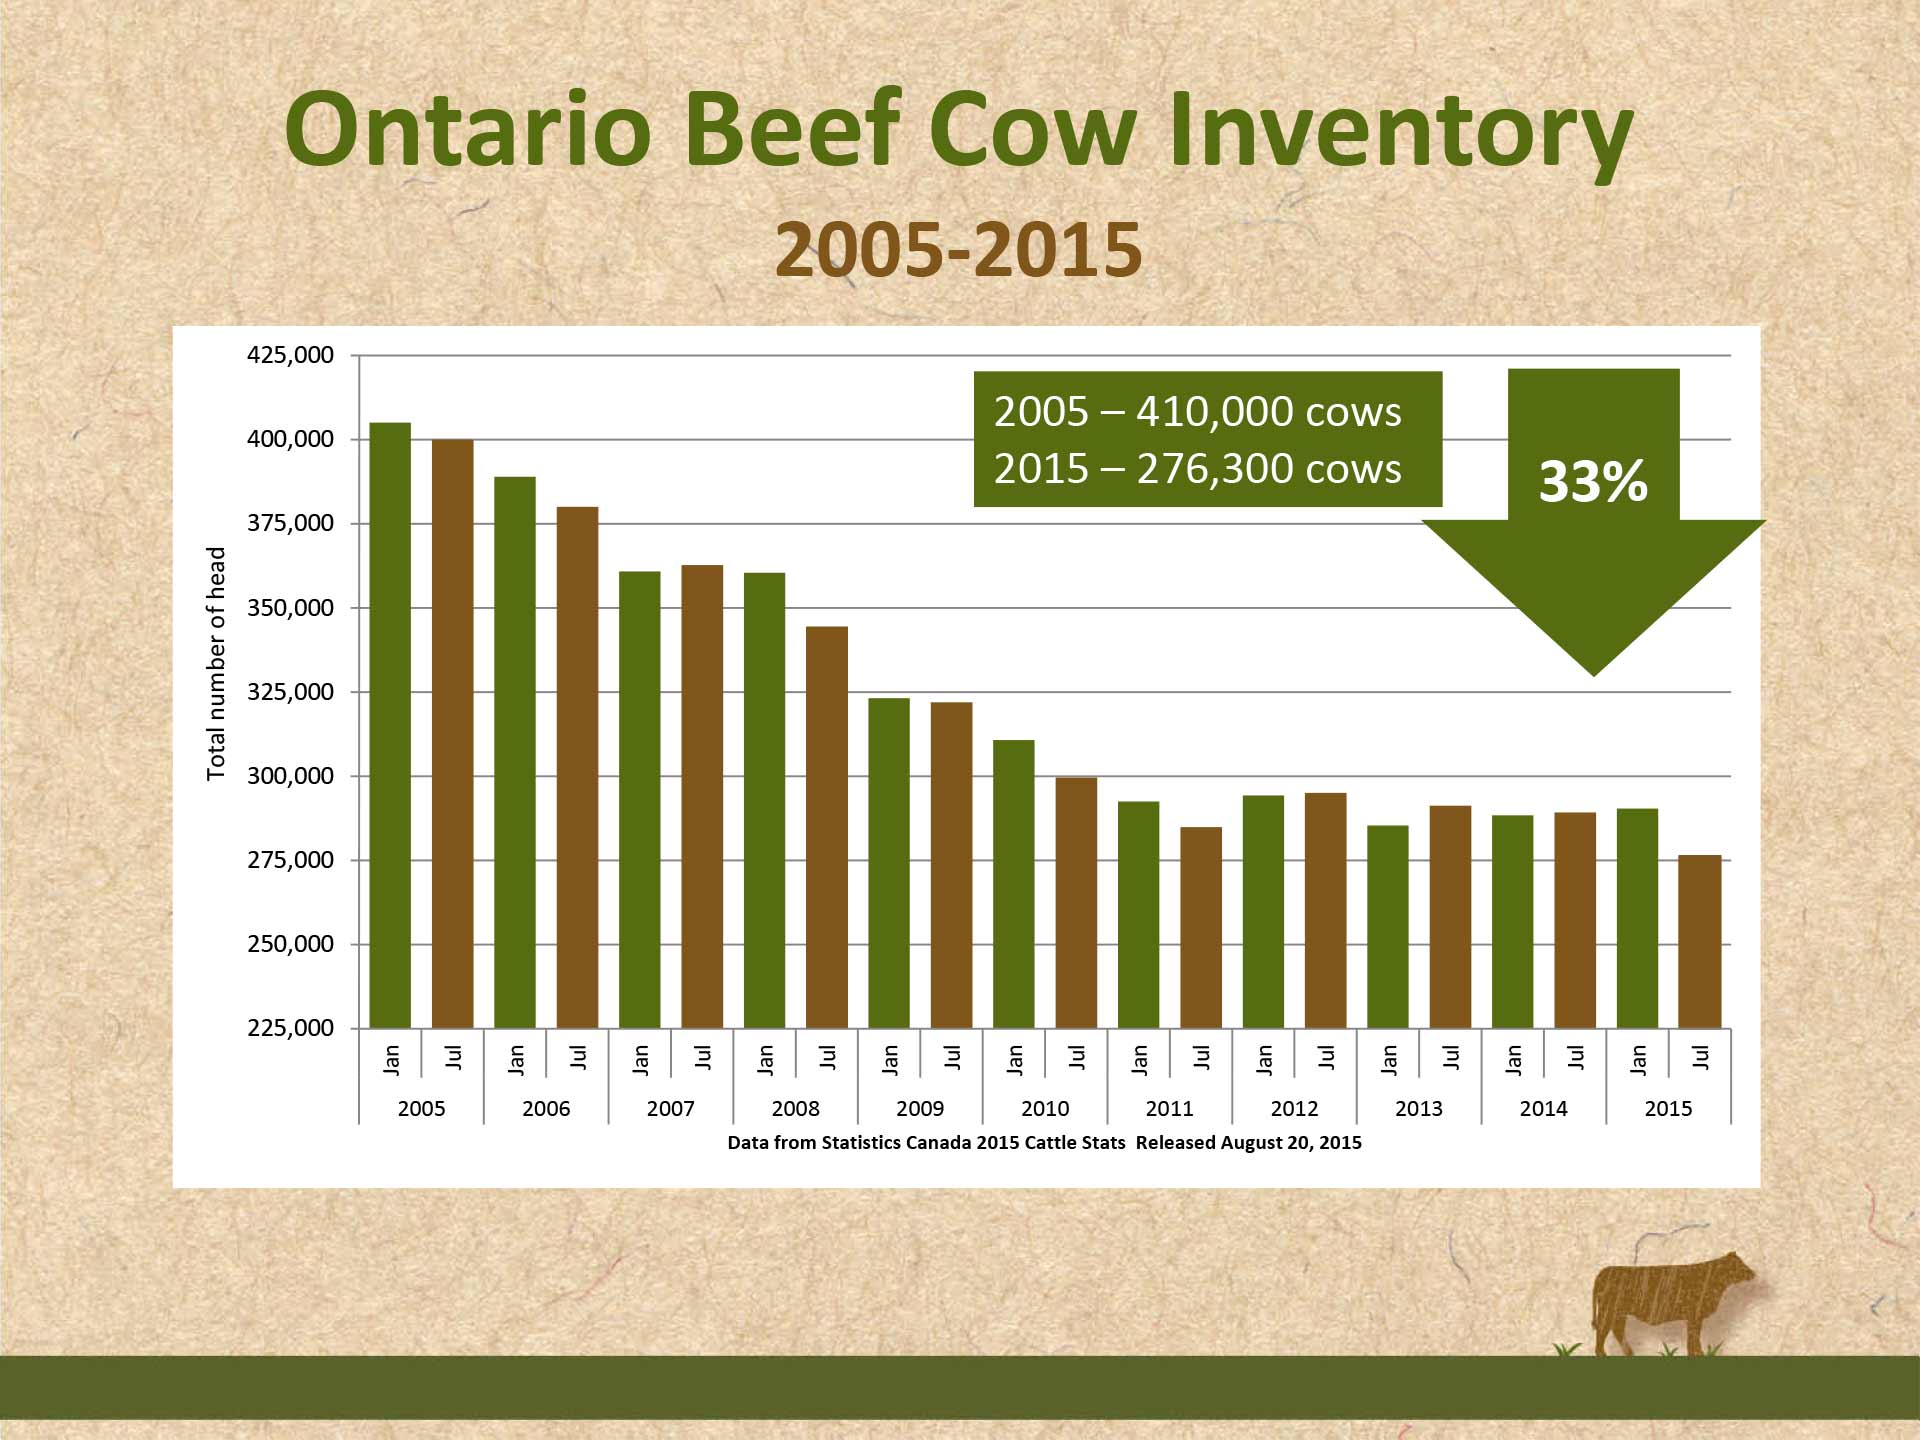 Ontario Beef Cow Inventory